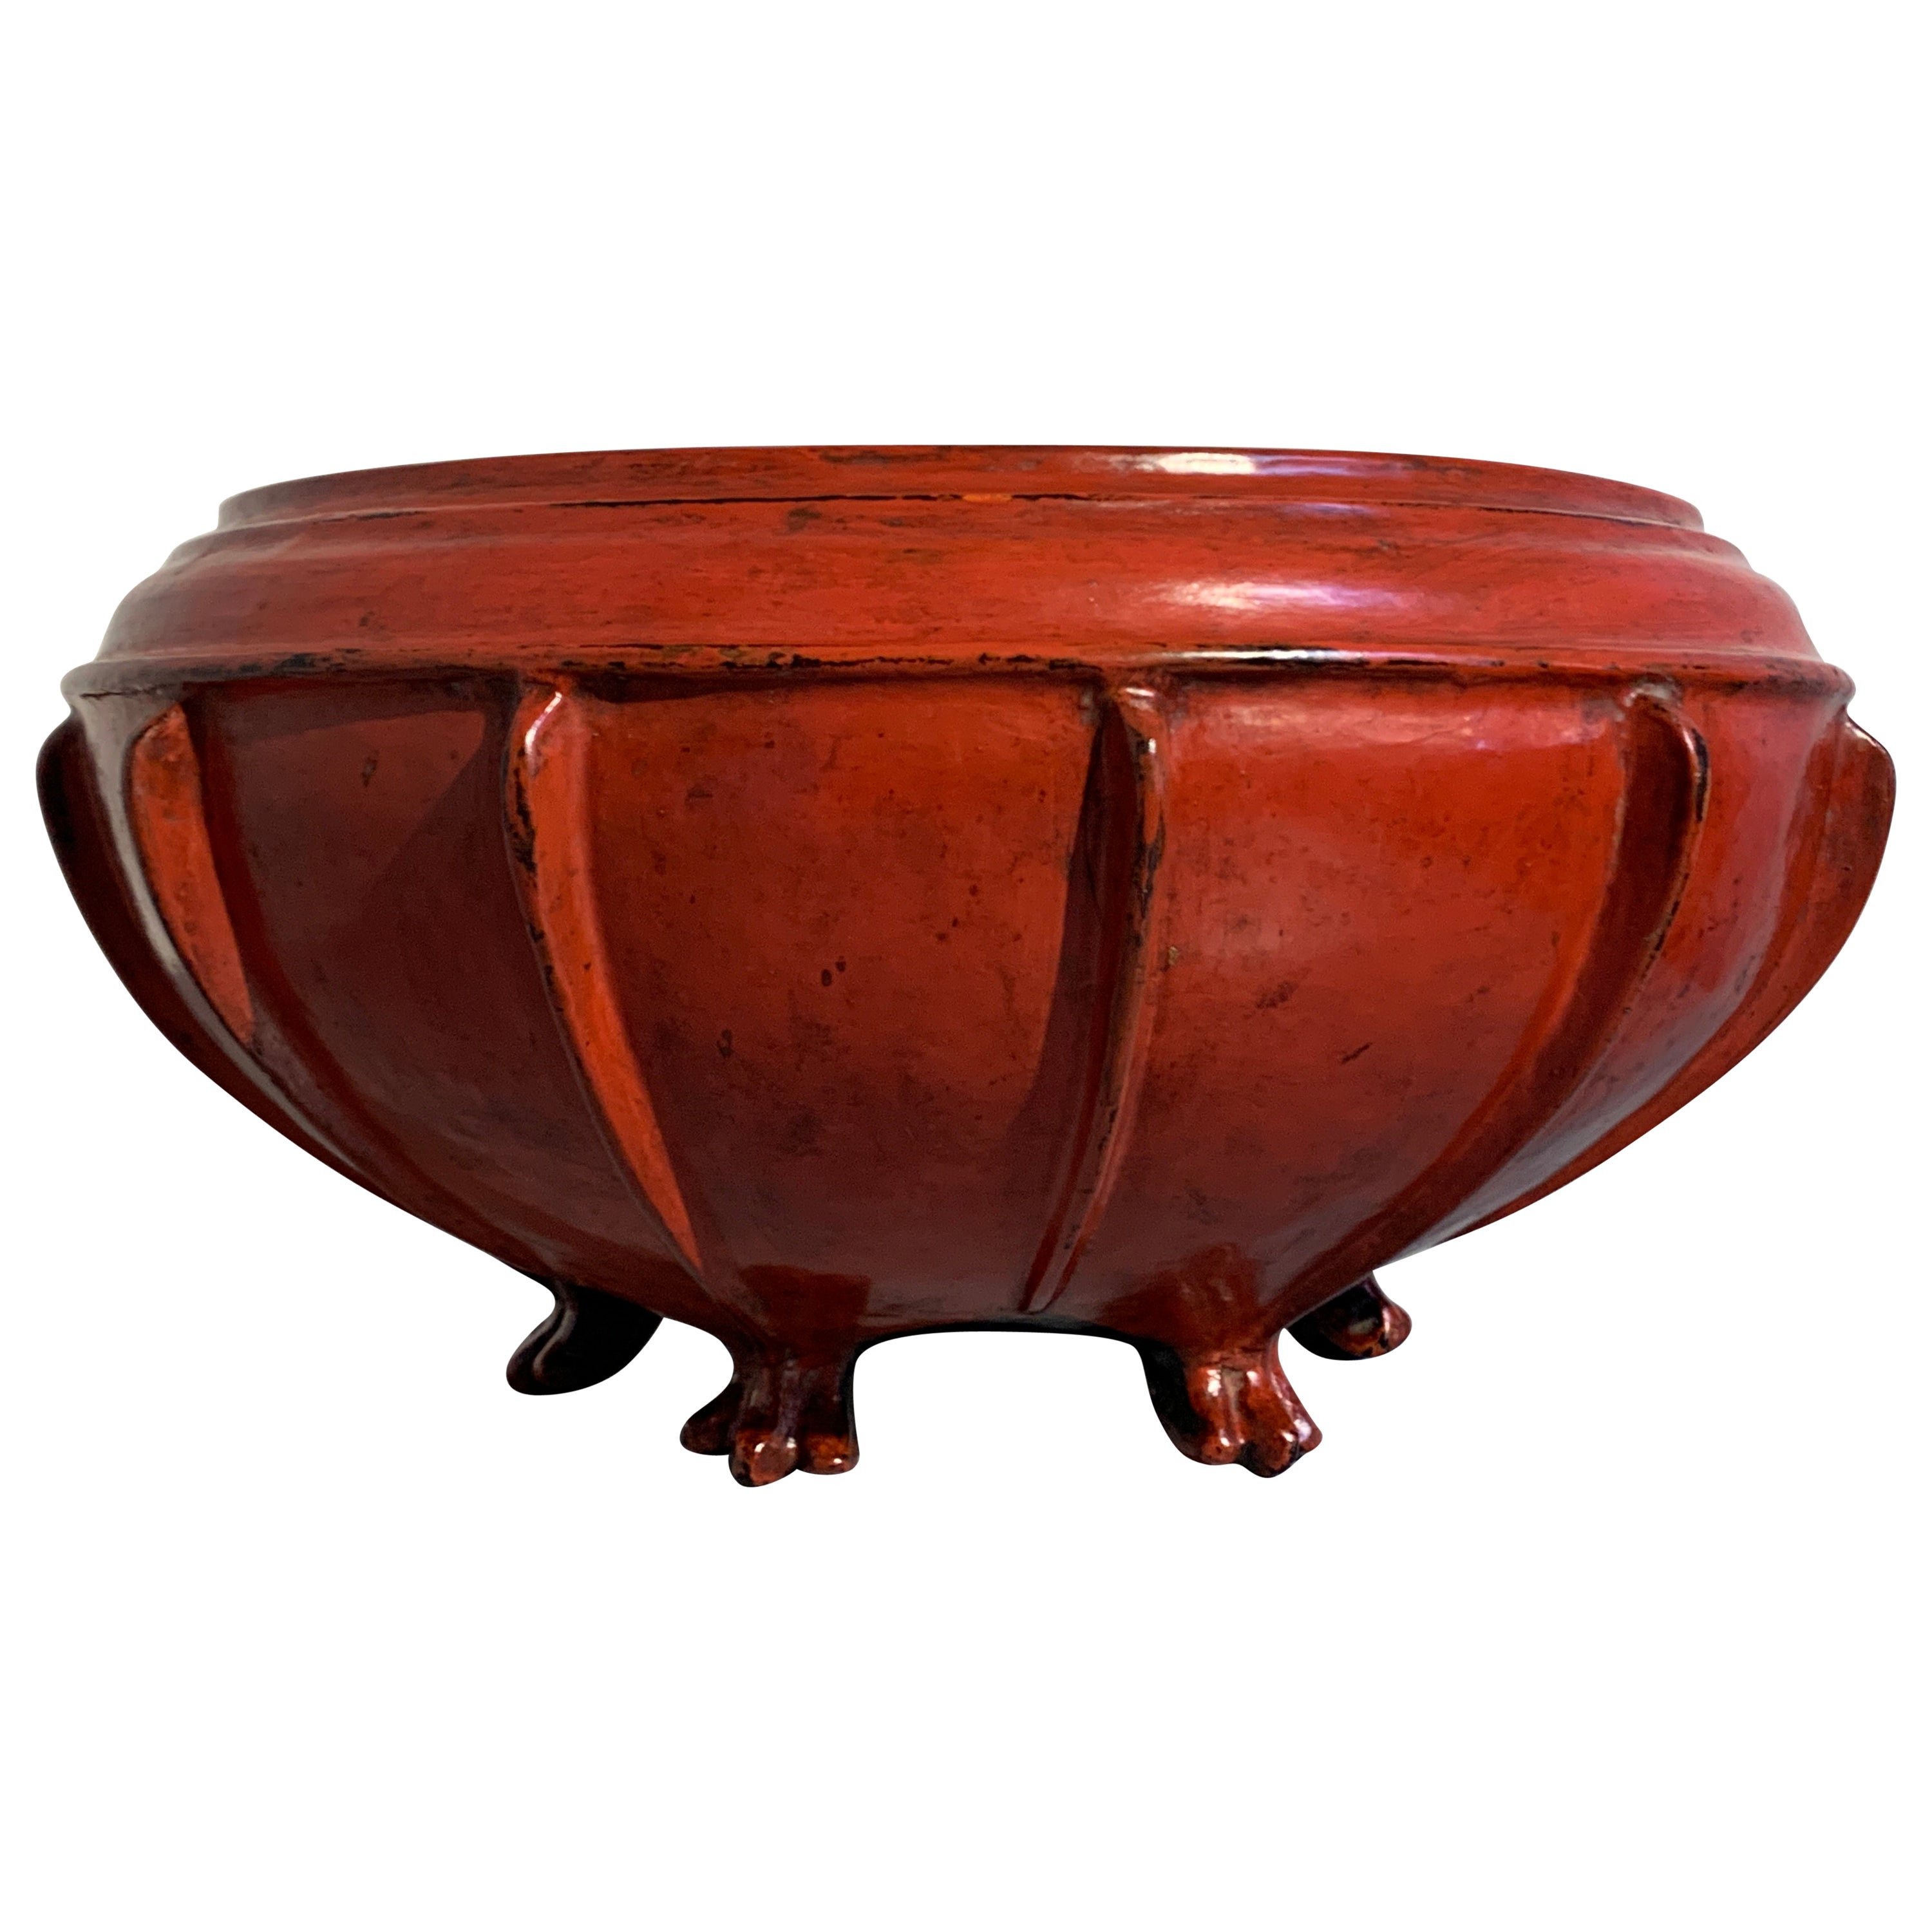 Large Burmese Red Lacquer Large Offering Bowl, Late 19th or Early 20th Century